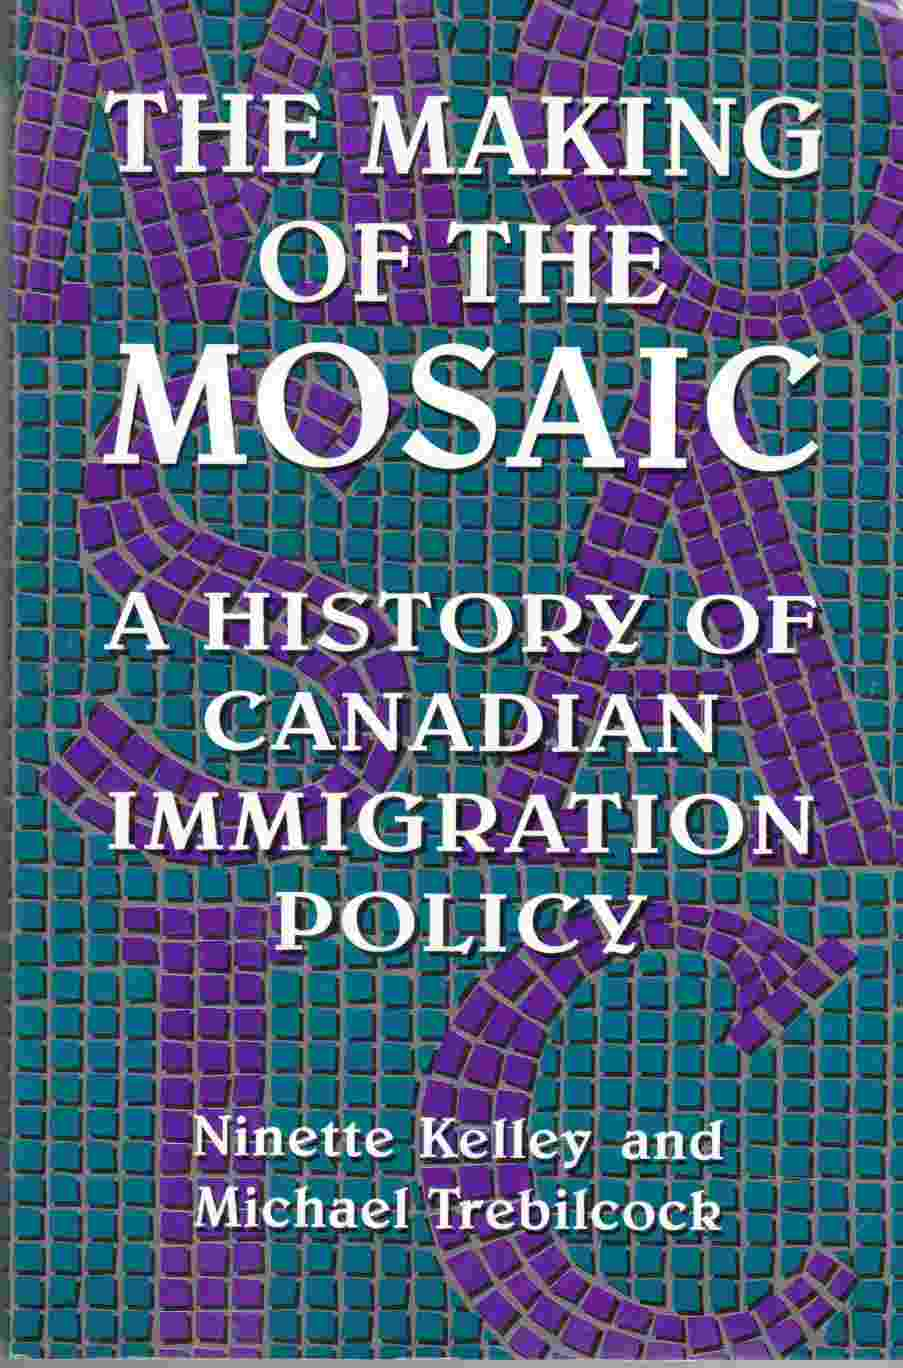 Image for The Making of the Mosaic A History of Canadian Immigration Policy